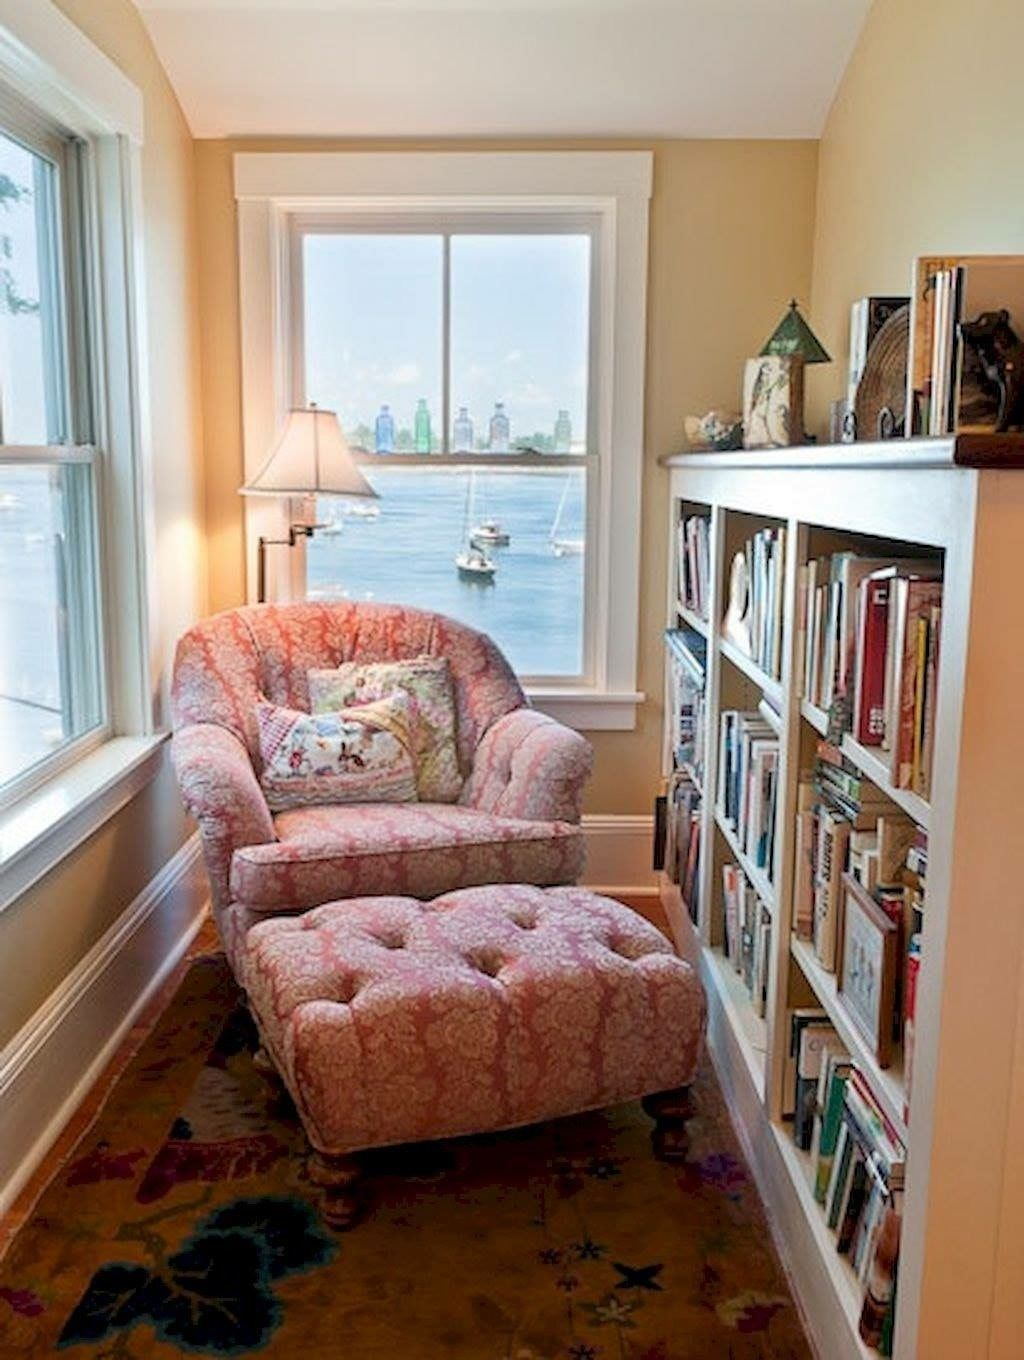 Cozy Reading Room Design Ideas: Reading Room Decor, Small Home